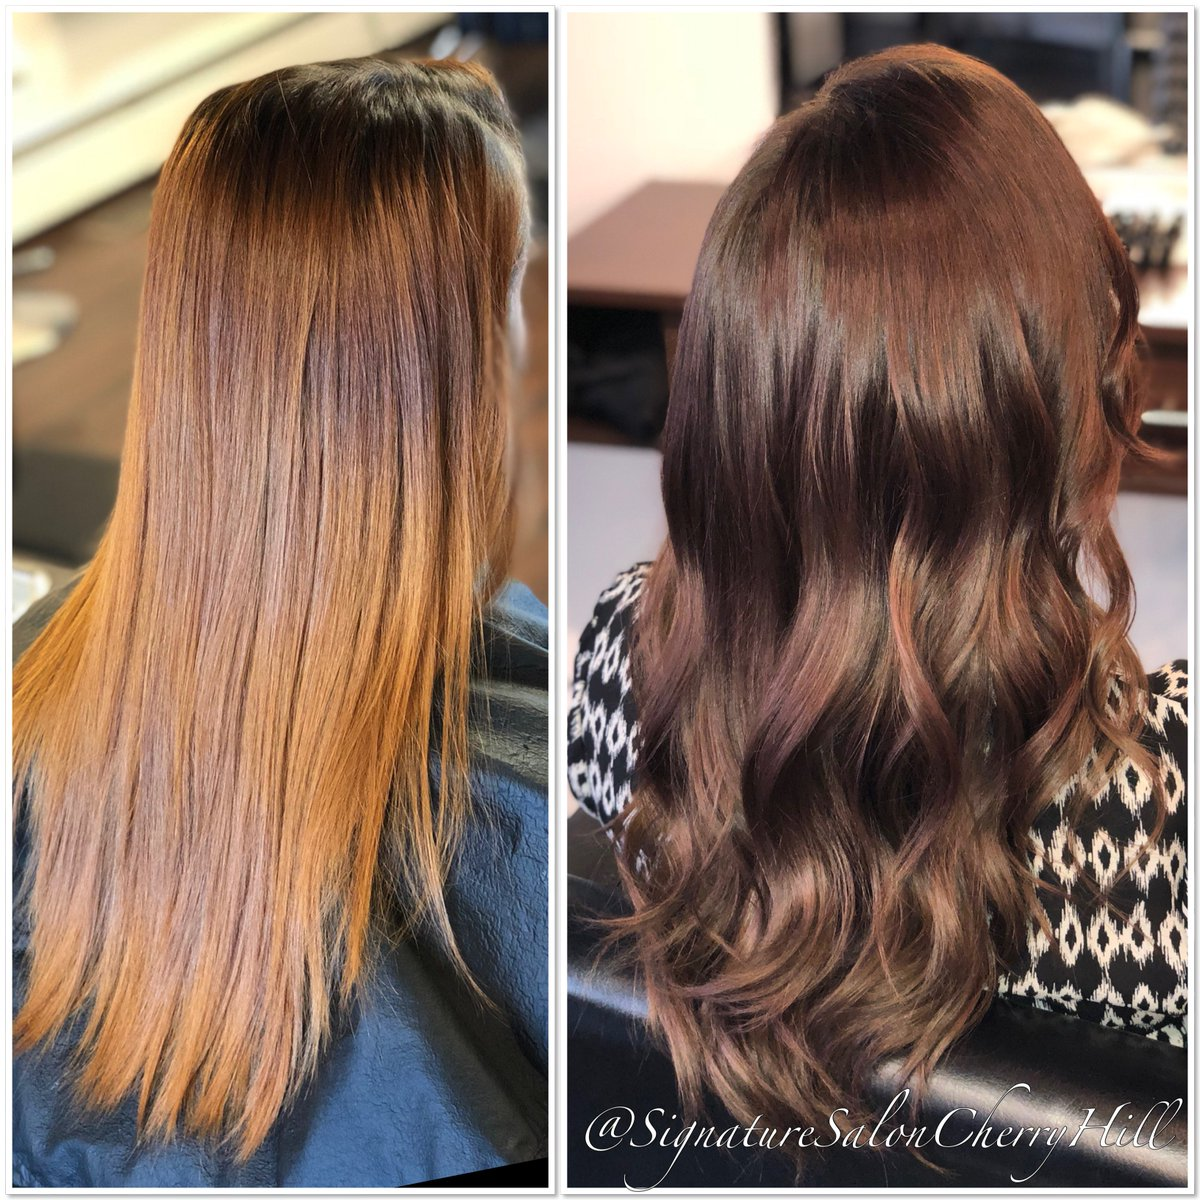 Signaturesalon On Twitter From Faded To Fabulous Beautiful Redken Hair Color By Lexi Refreshed Newlook Haircolor Fab Redken Colorproof Styles Hairstyles Hairgoals Beauty Instapic Picoftheday Modern Salonlife Longhair Brunette